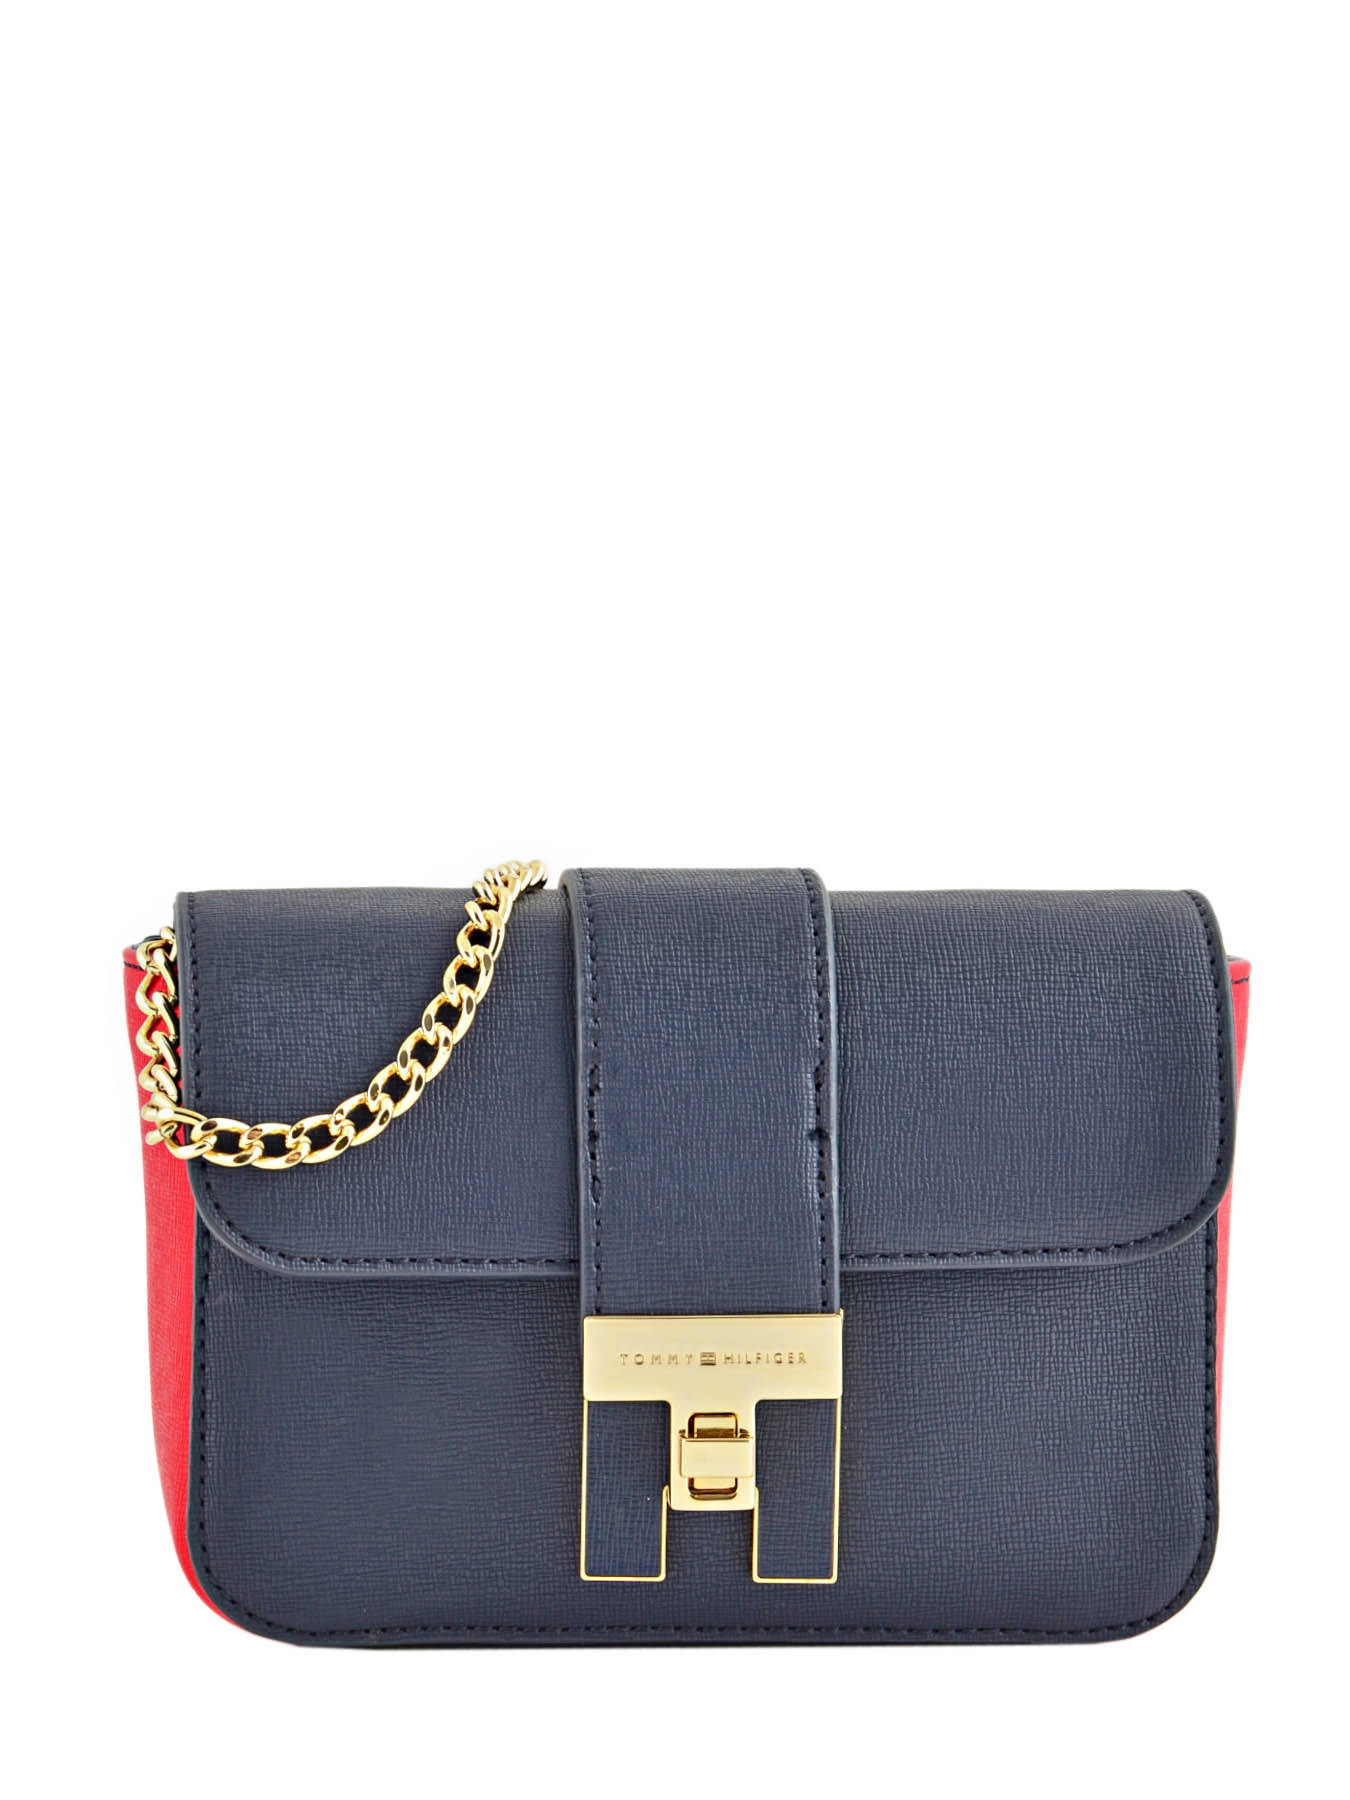 ... Shoulder Bag Th Heritage Tote Tommy hilfiger Blue th heritage tote  AW04530 ...